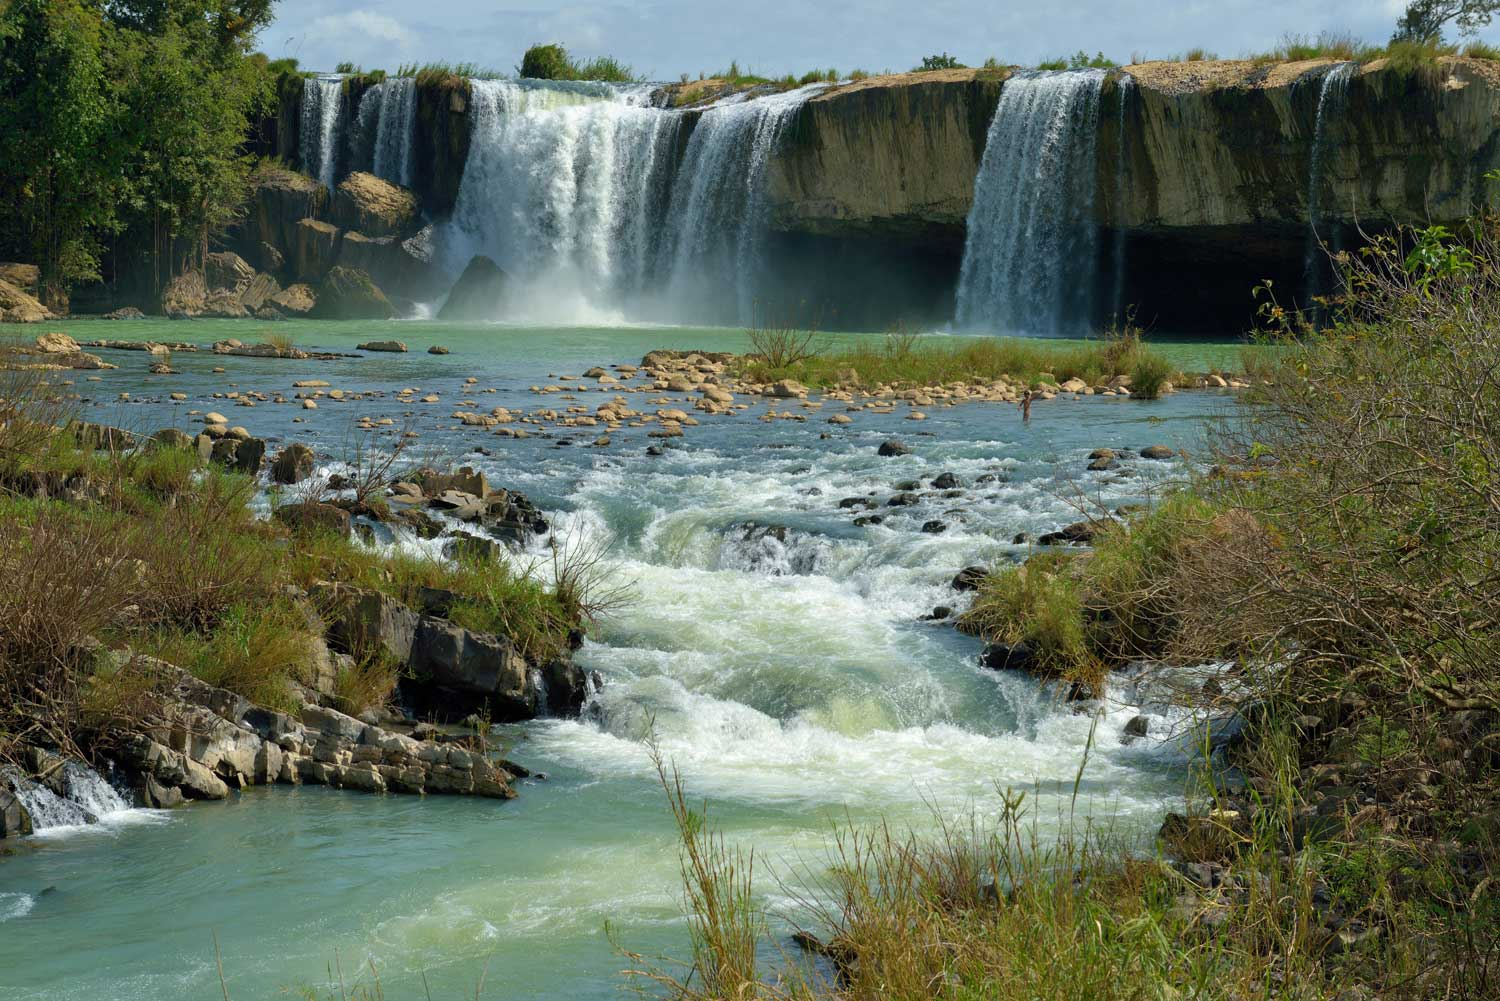 06_WEB_Dak_Lak_Waterfall_05